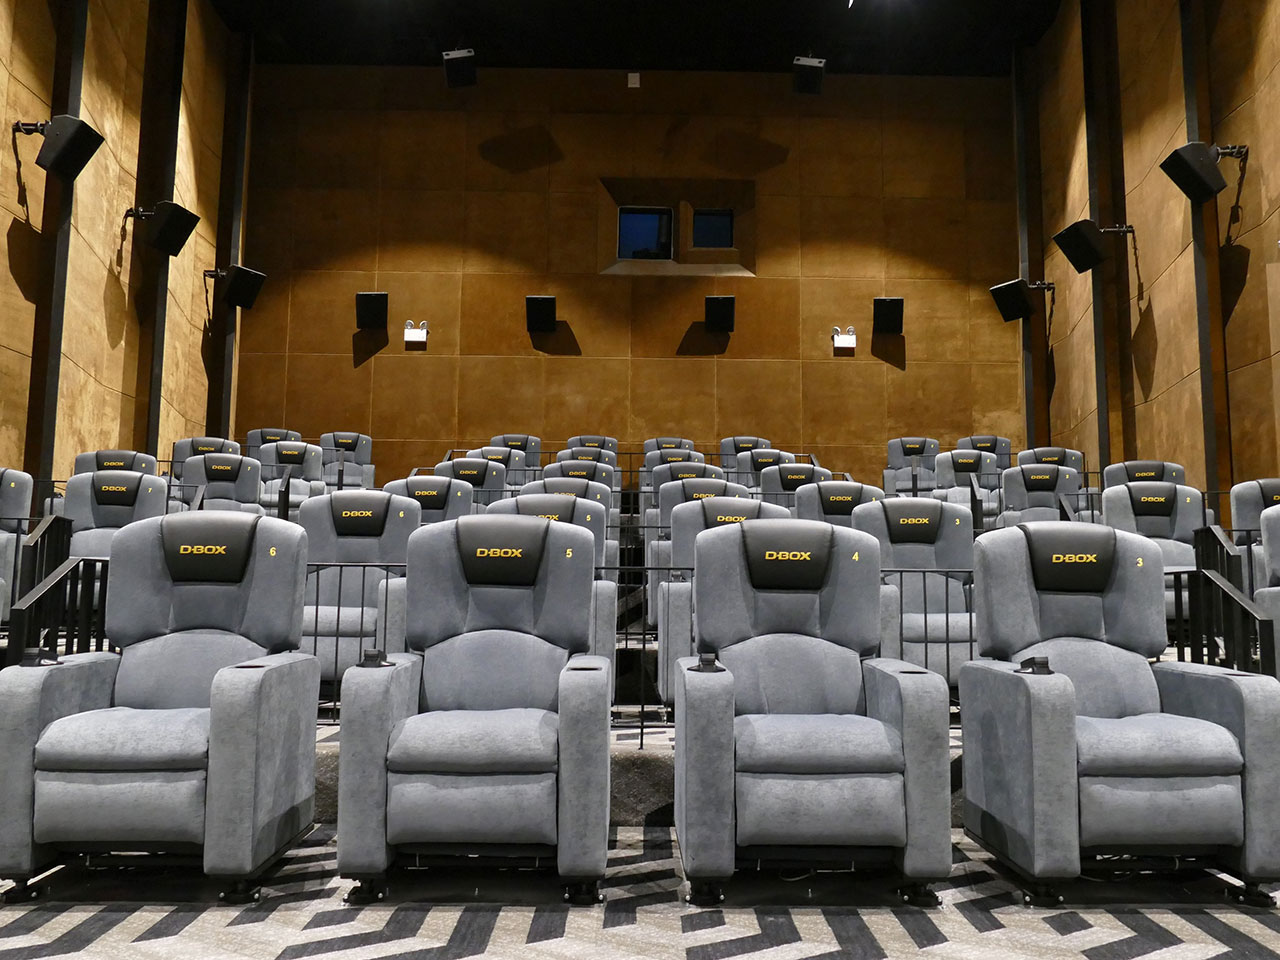 The interior of the Gold Class with D BOX hall at Bona Cinemas